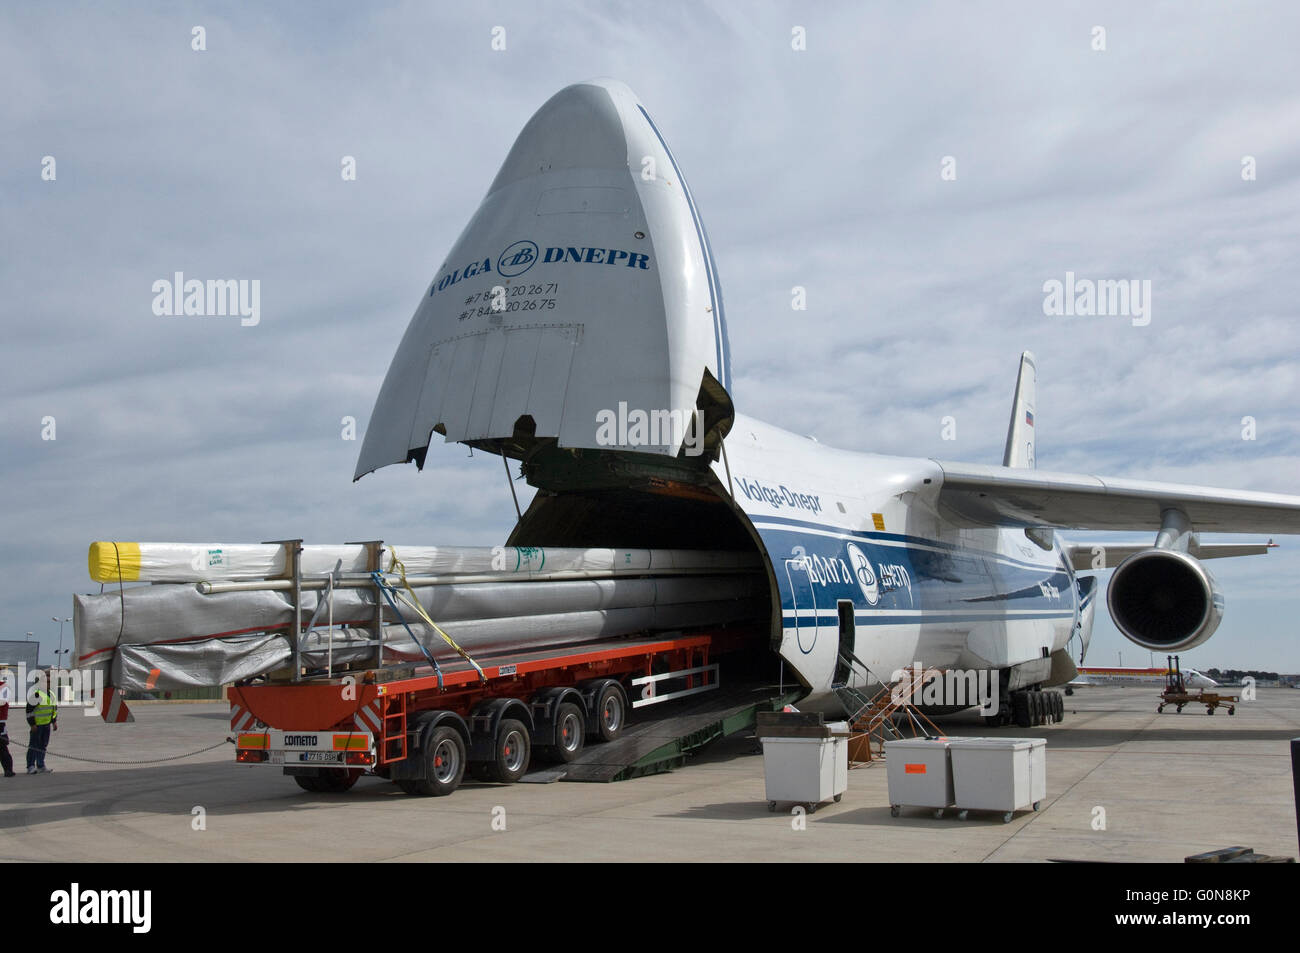 Stock Photo - Volga-Dnepr Airlines Antonov An-124-100 Commercial transport aircraft. Forward and rear cargo doors open for drive through acce : aircraft doors - Pezcame.Com